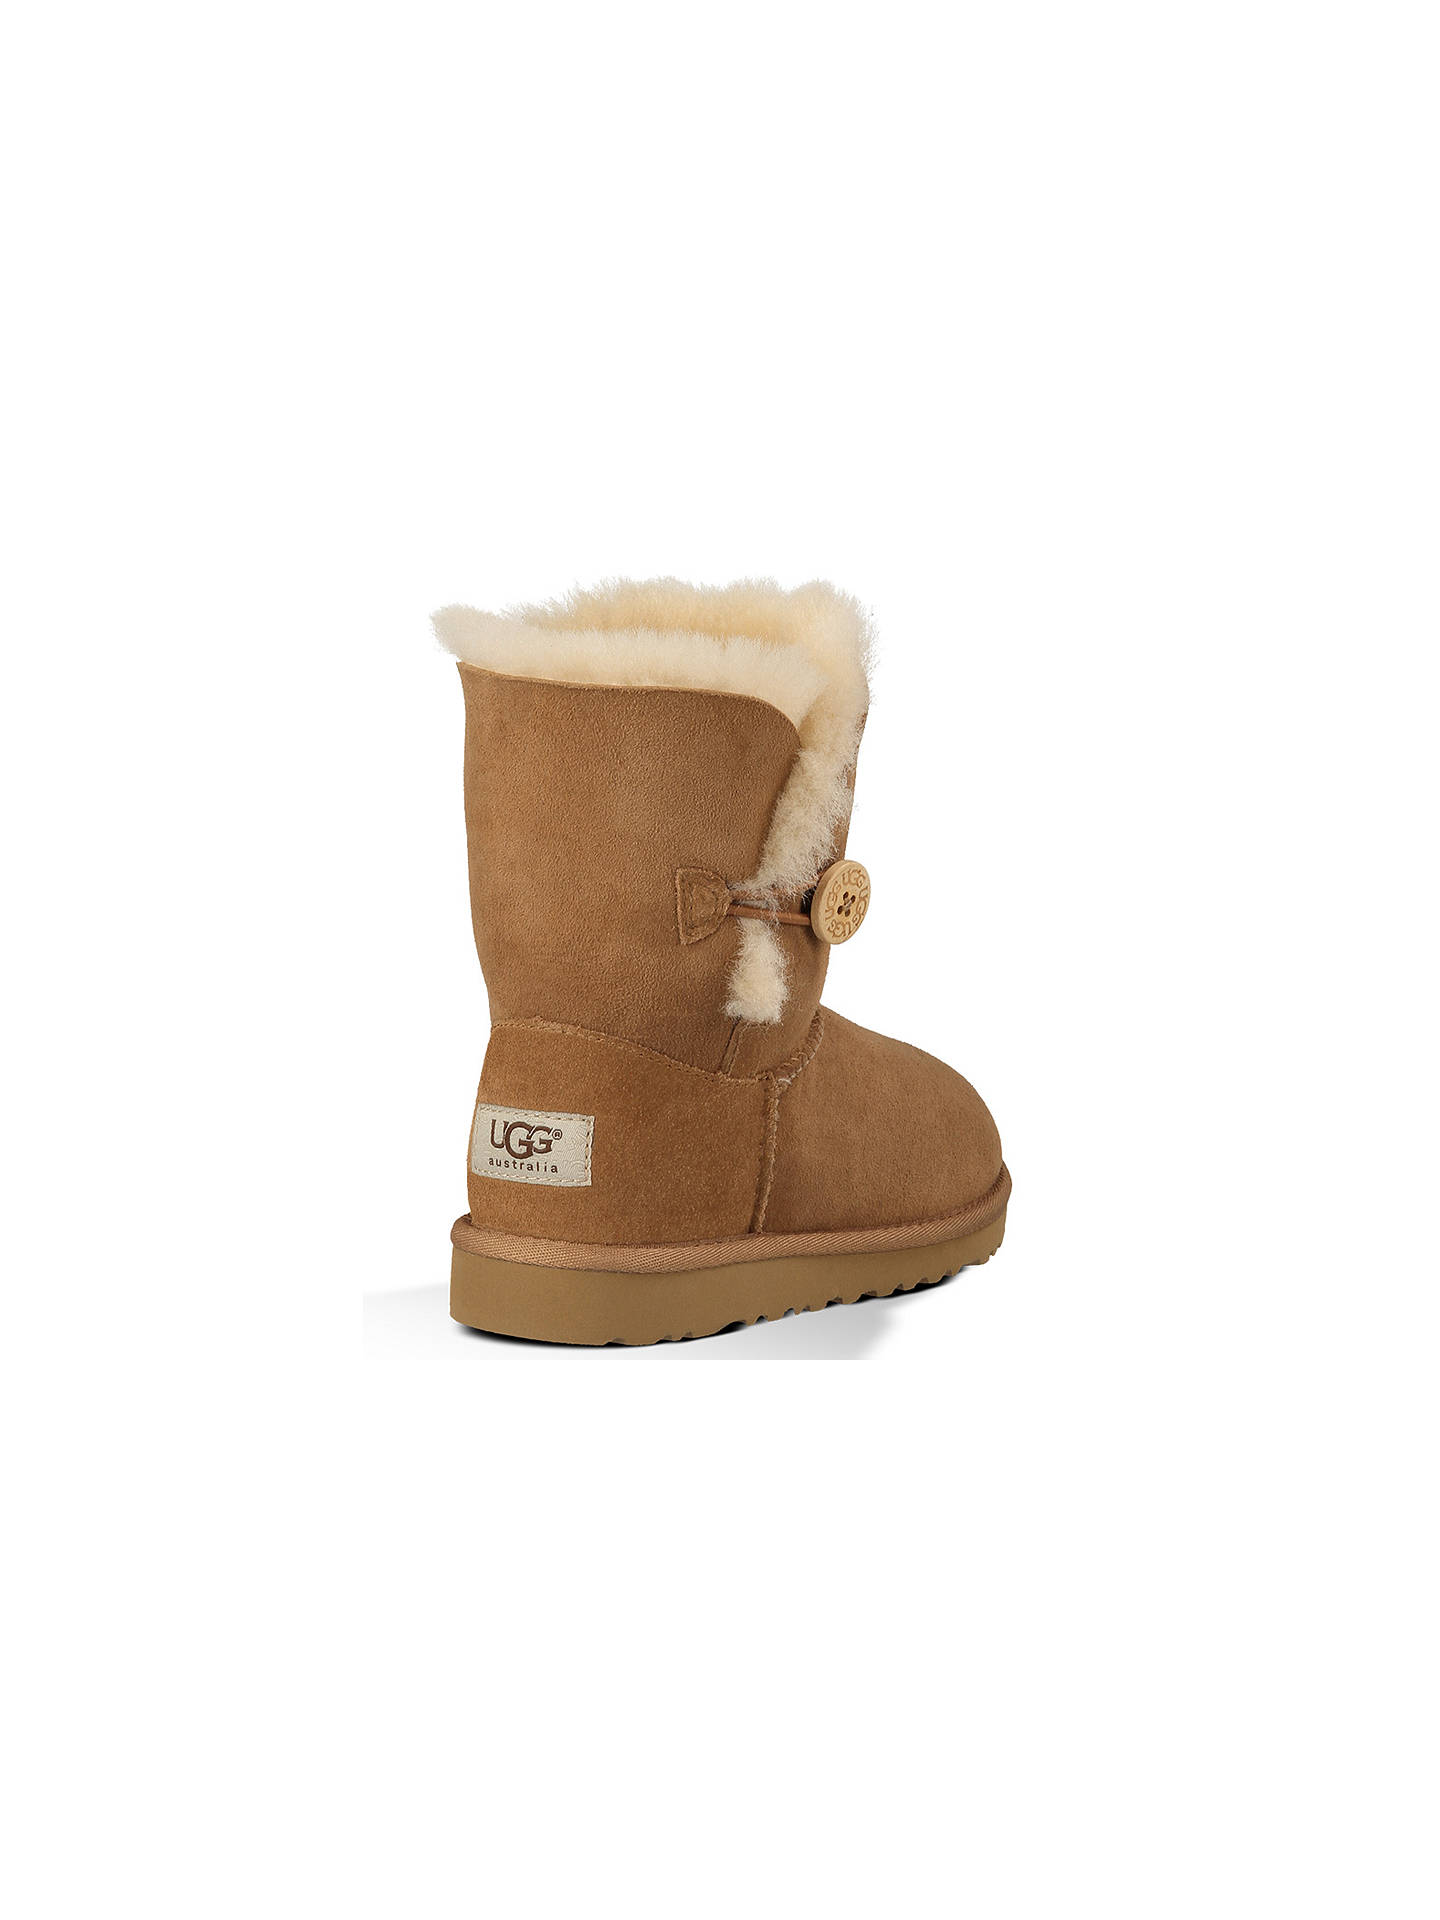 c5a56ab57 ... Buy UGG Children's Bailey Button Boots, Chestnut, 12 Jnr Online at  johnlewis. ...